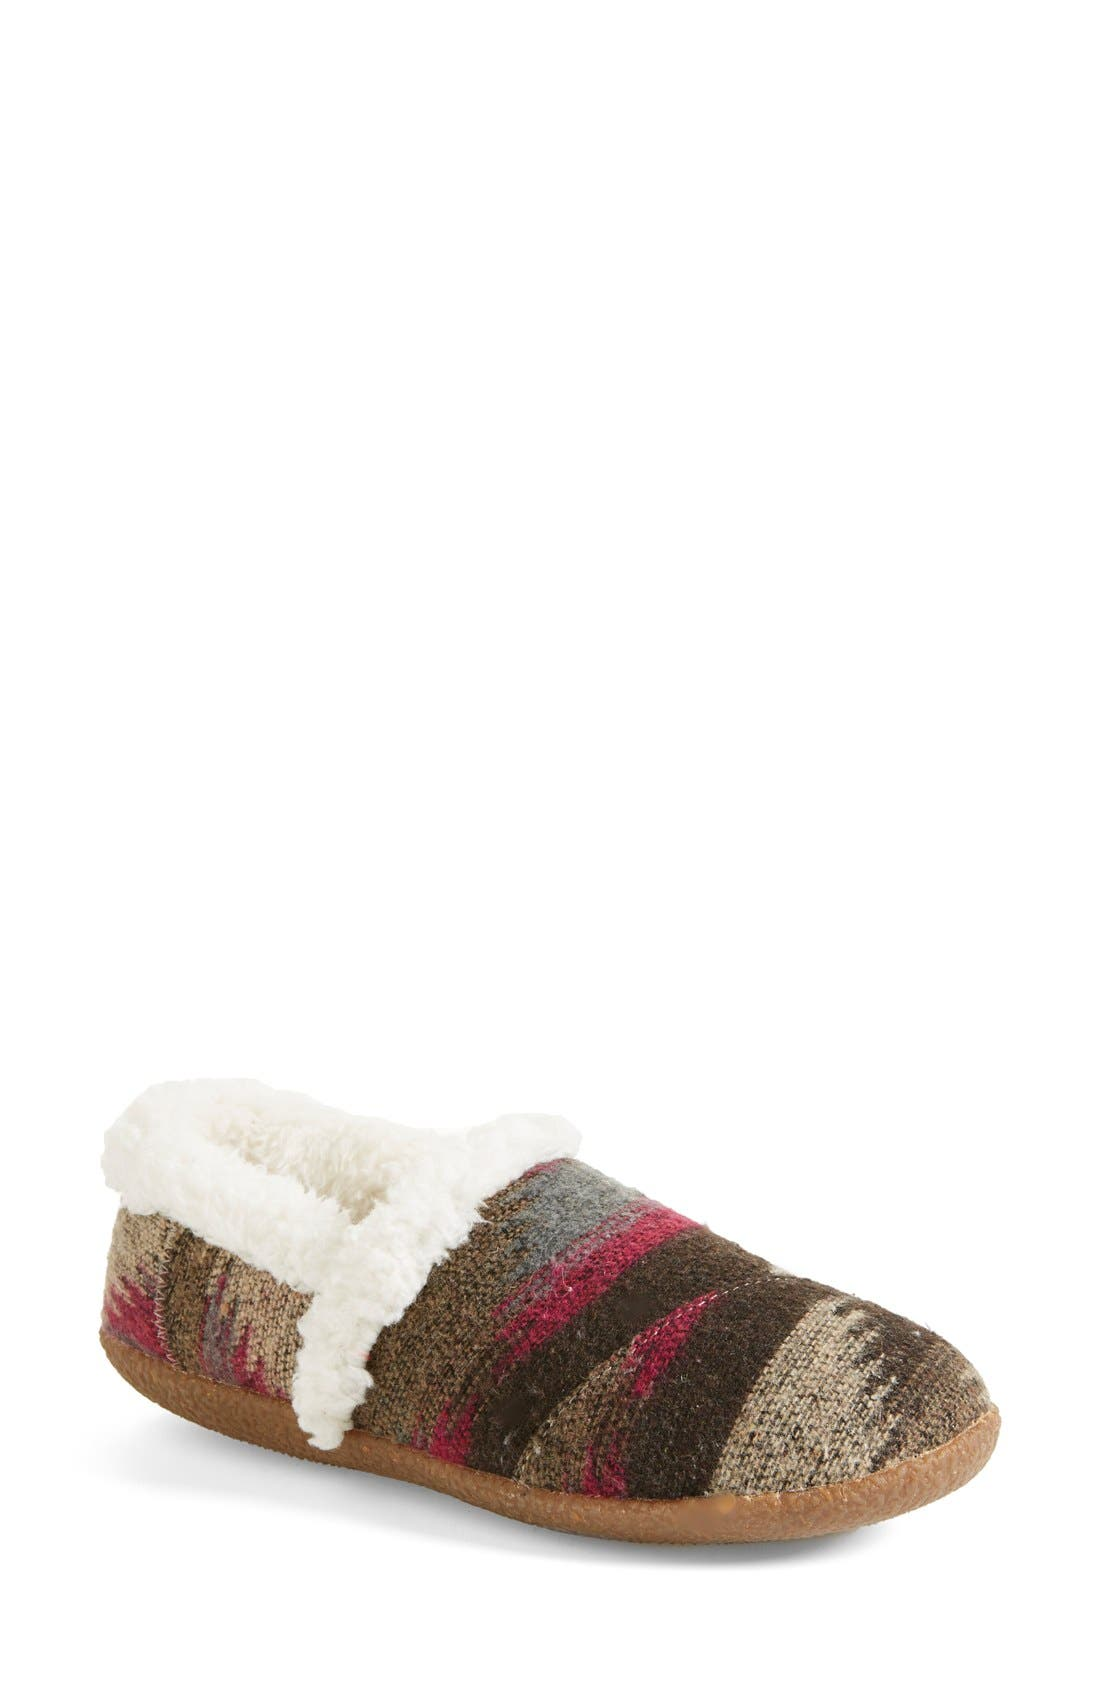 Main Image - TOMS 'Classic - Wool' Slippers (Women)